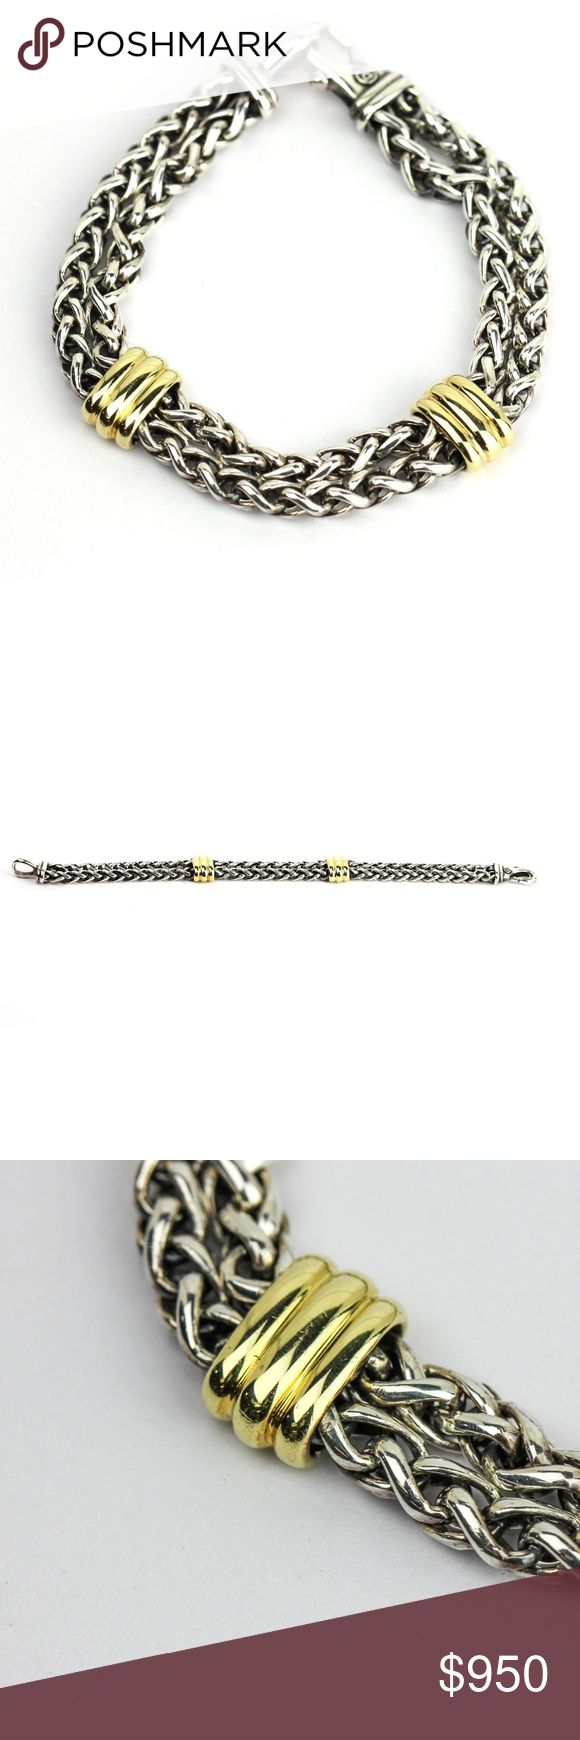 """David Yurman Men's Two Station Chain Bracelet David Yurman double wheat chain bracelet with two gold station from the Men's collection. Large lobster clasp. Size Medium. Width, 10mm. This bracelet fits a wrist up to 7"""". Retired. Guaranteed Authentic.  Previously owned. In excellent condition. Professionally cleaned and polished. All the pictures provided are the actual item for sale.  SIZE: Medium WRIST SIZE: Up to 7 inches WIDTH: 10mm WEIGHT: 42.1 grams David Yurman Accessories Jewelry"""